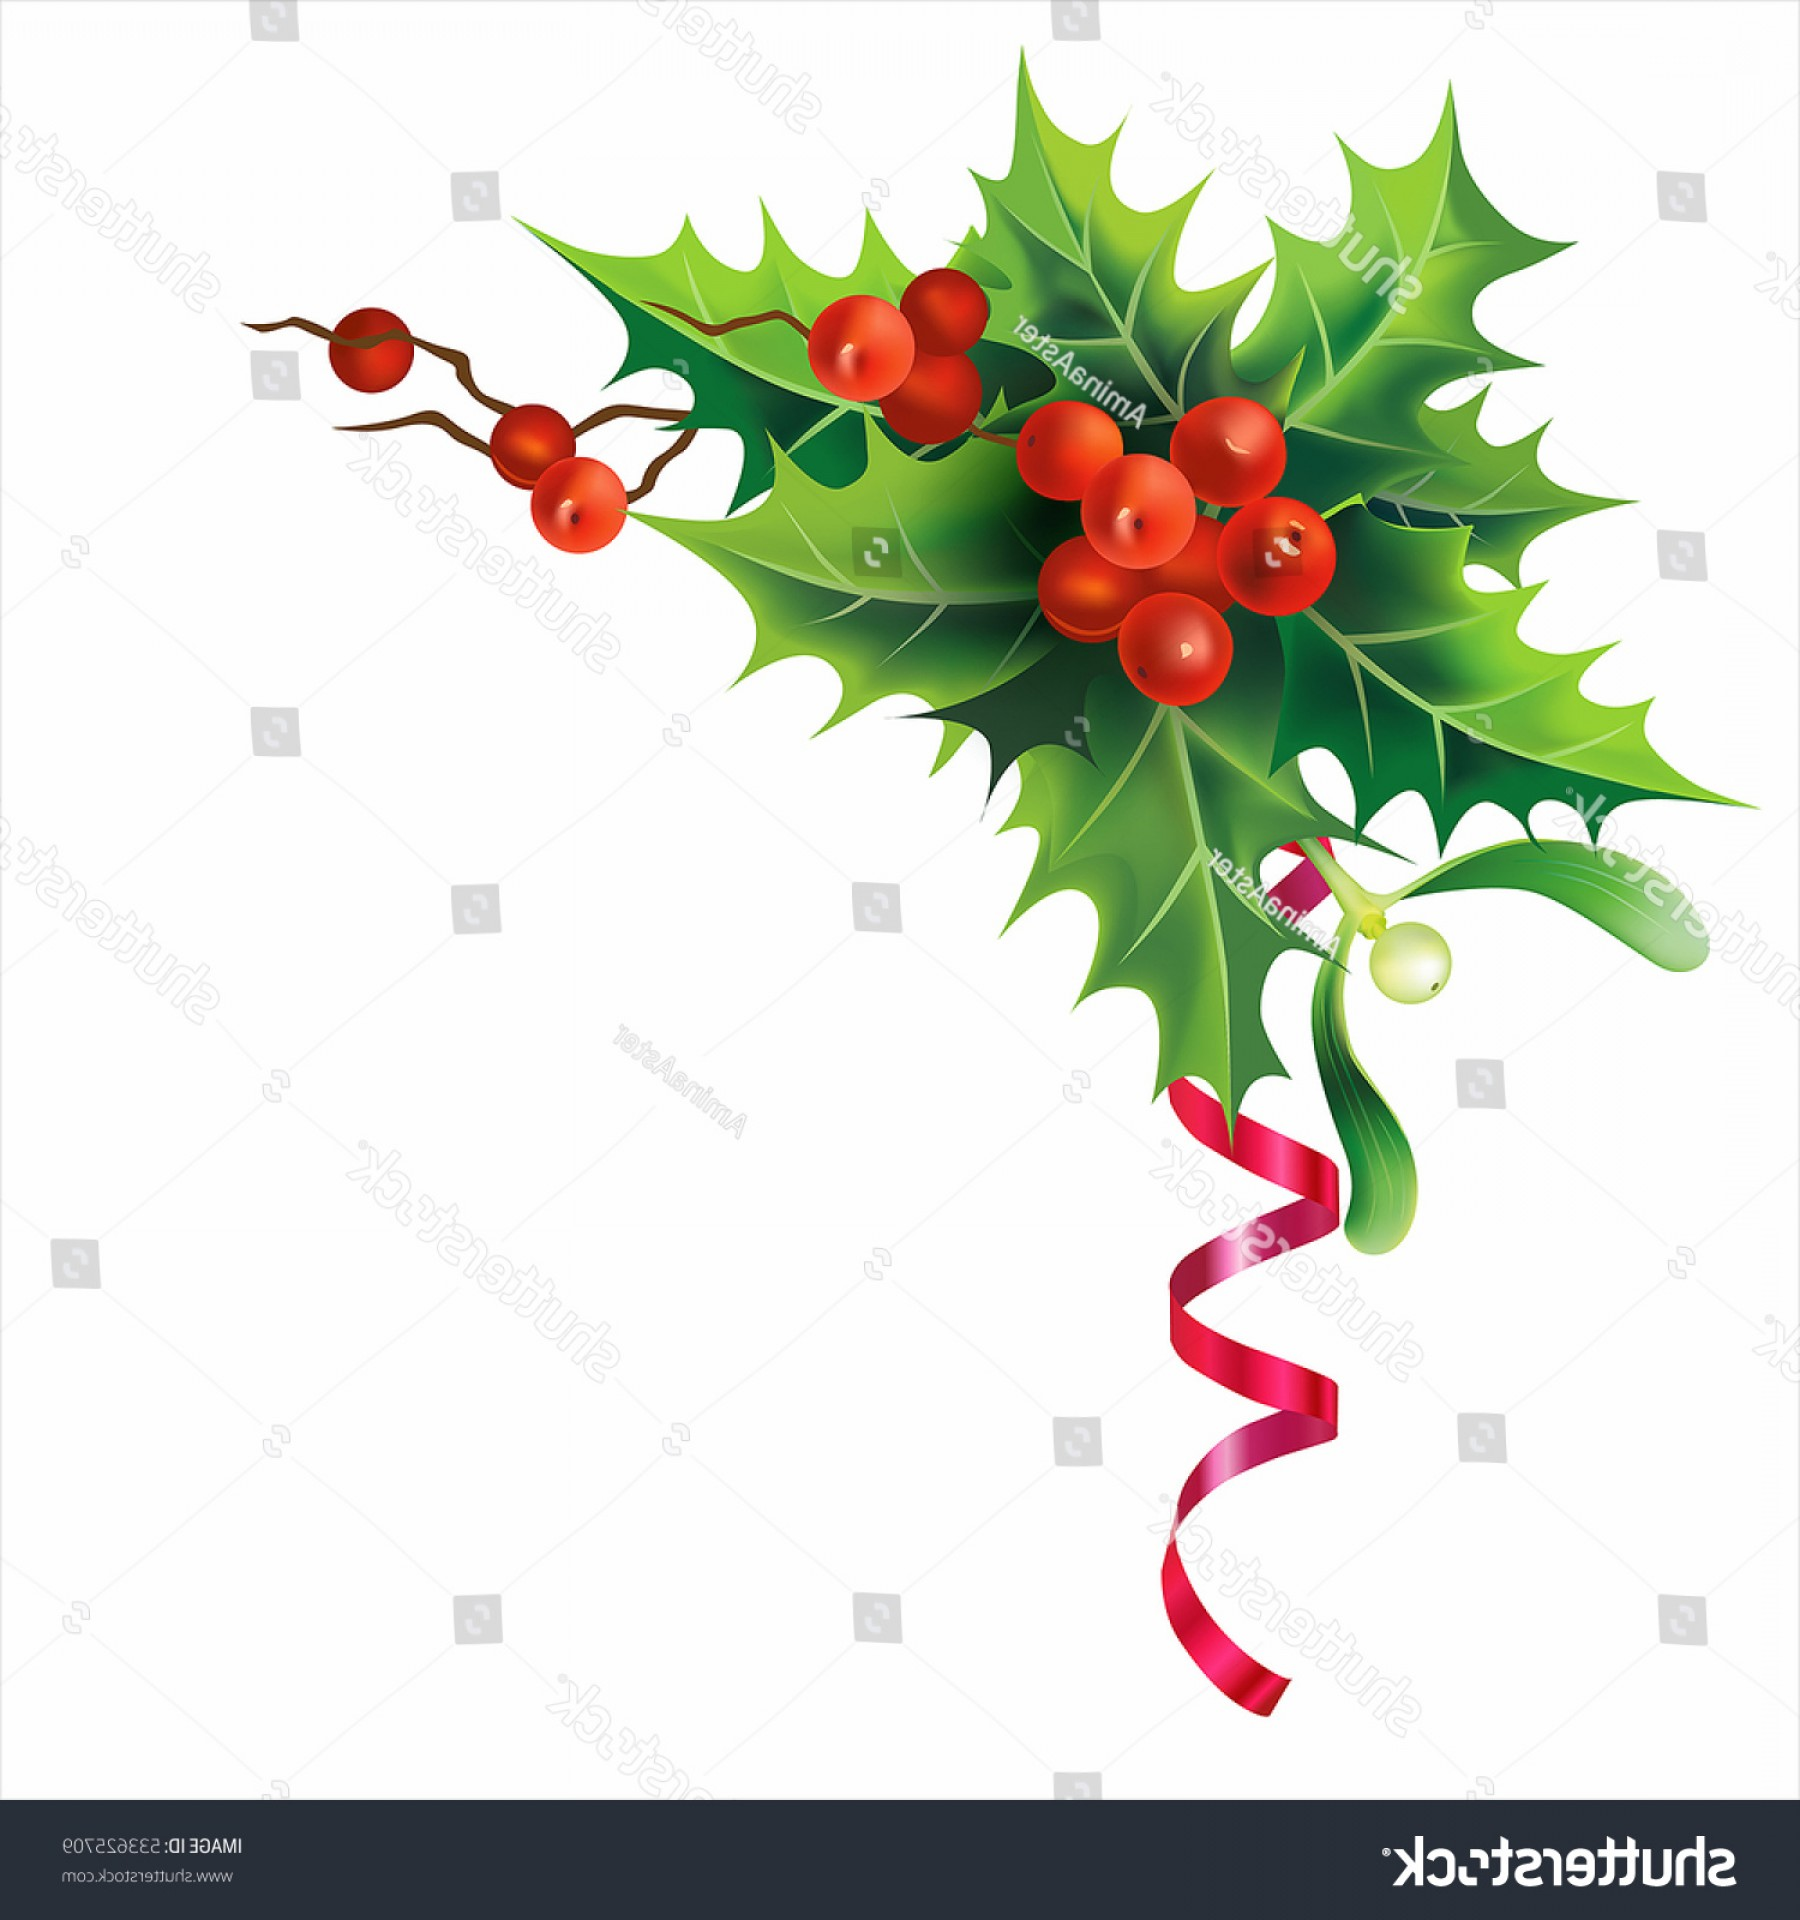 Christmas Holly Border Vector: Christmas Holly Border Isolated On White